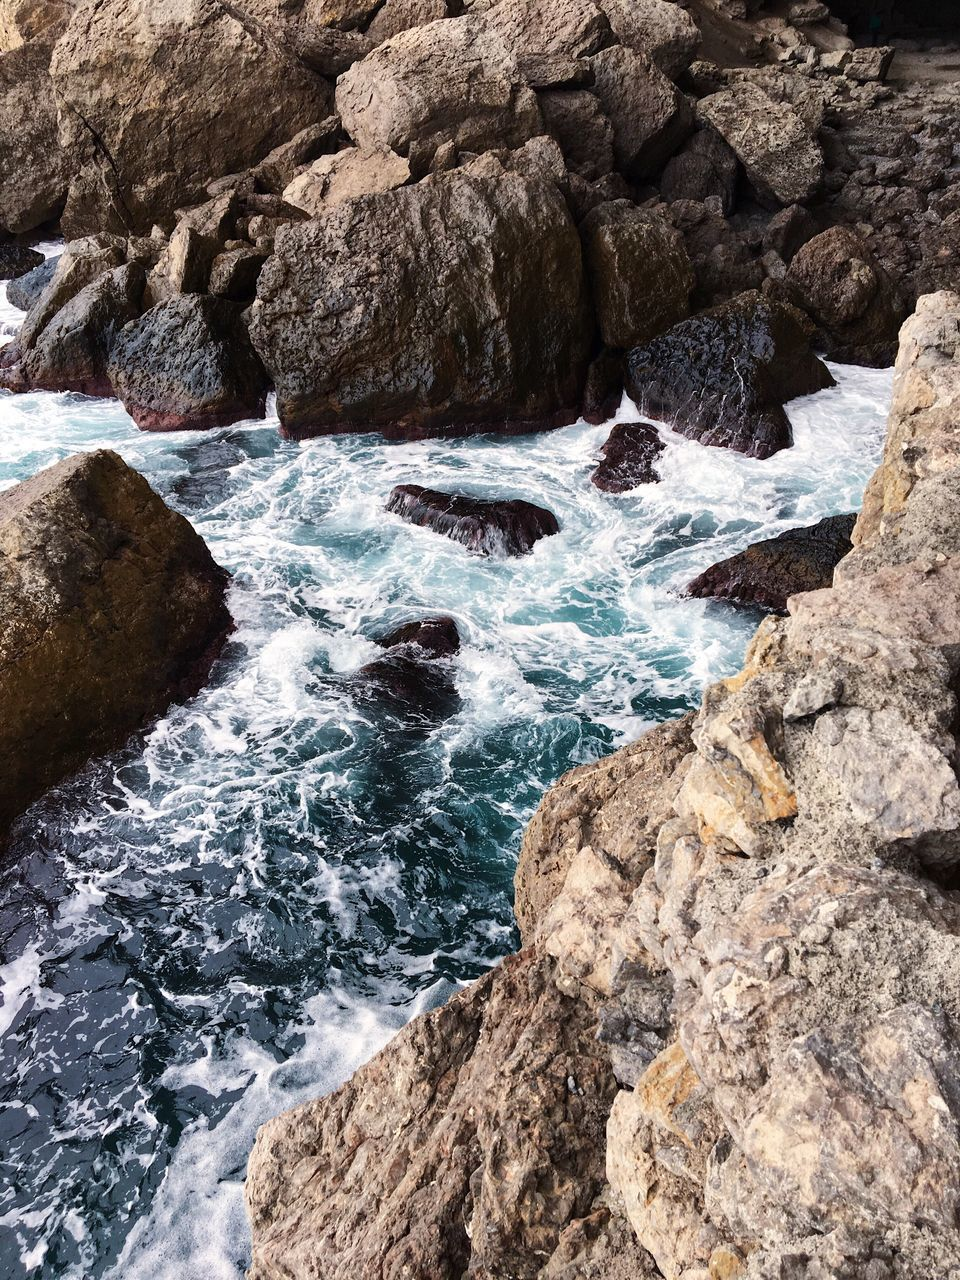 rock, rock - object, solid, water, beauty in nature, motion, rock formation, sea, nature, scenics - nature, day, no people, land, sport, aquatic sport, outdoors, high angle view, tranquility, power in nature, flowing water, flowing, rocky coastline, eroded